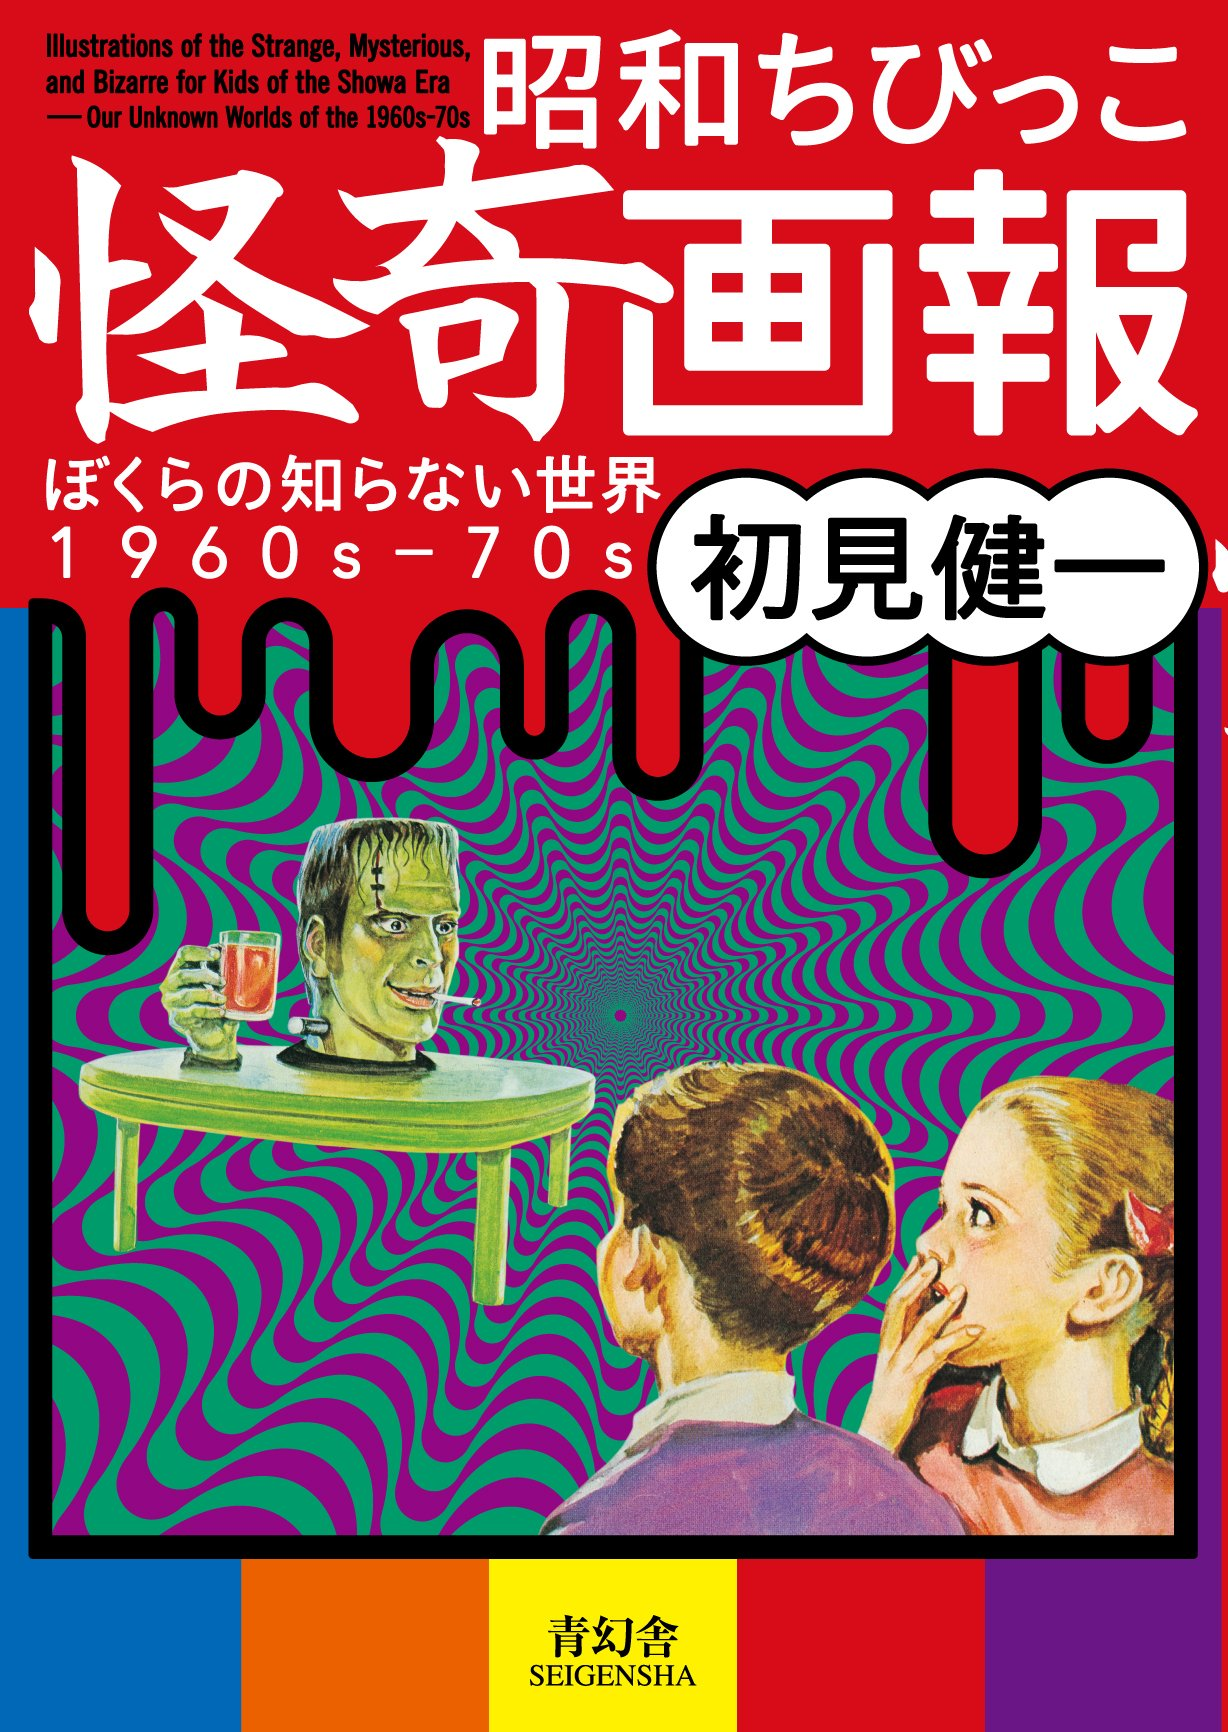 Illustrations Of The Strange, Mysterious And Bizarre For Kids Of The Showa Era (Japanese Edition)